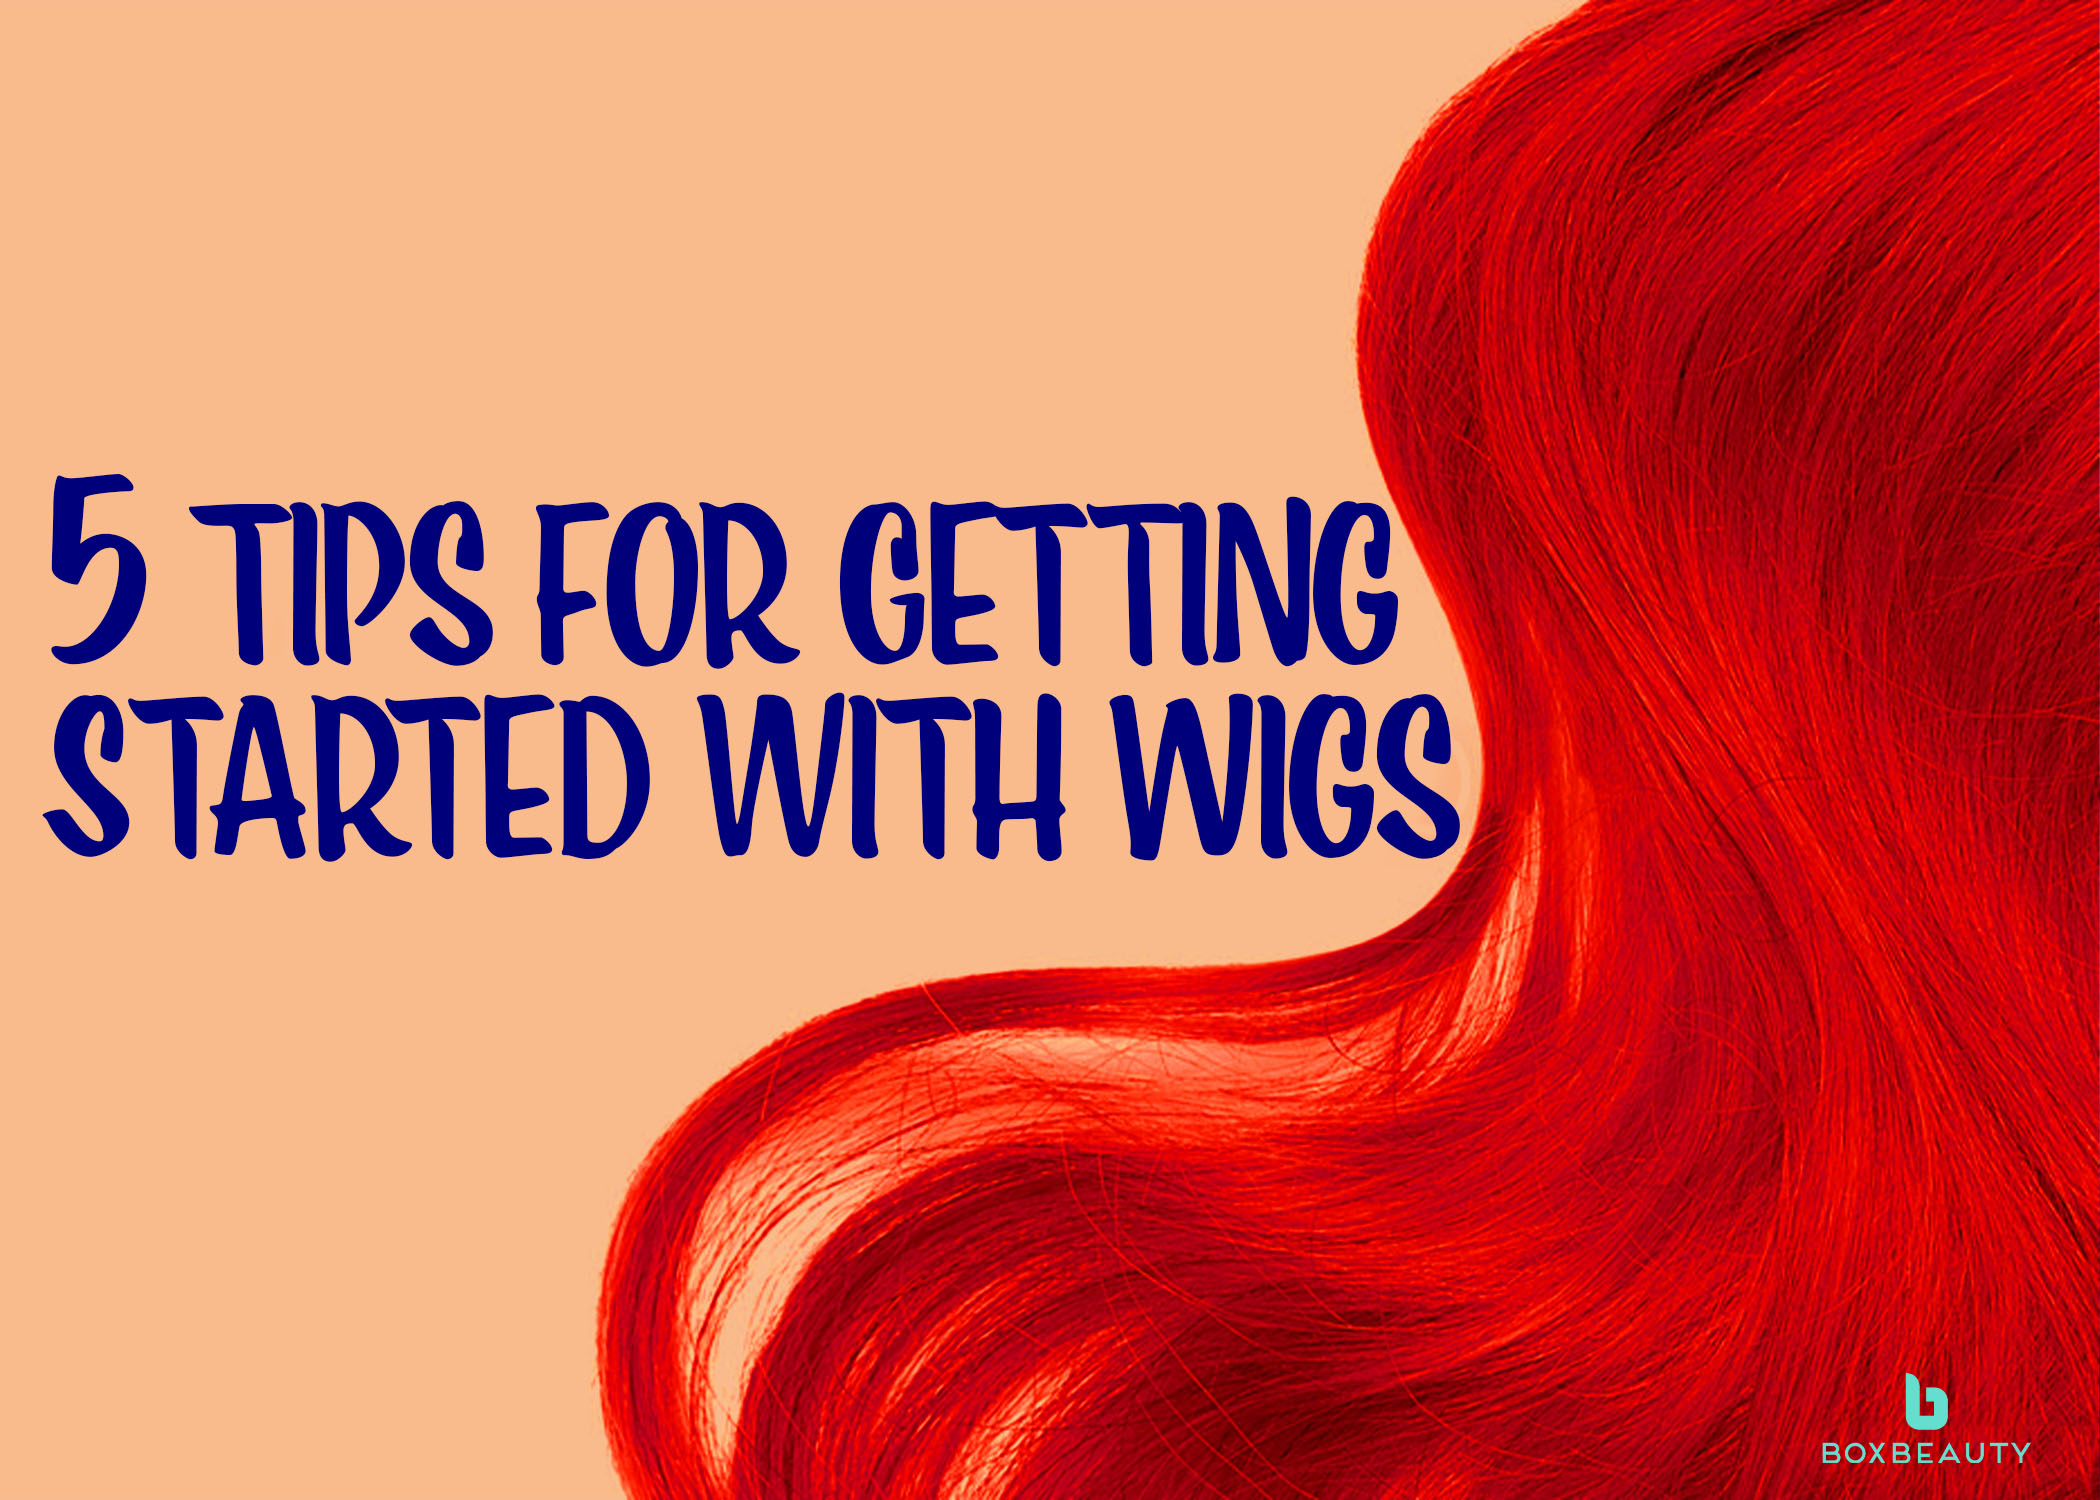 5 Tips for Getting Started with Wigs